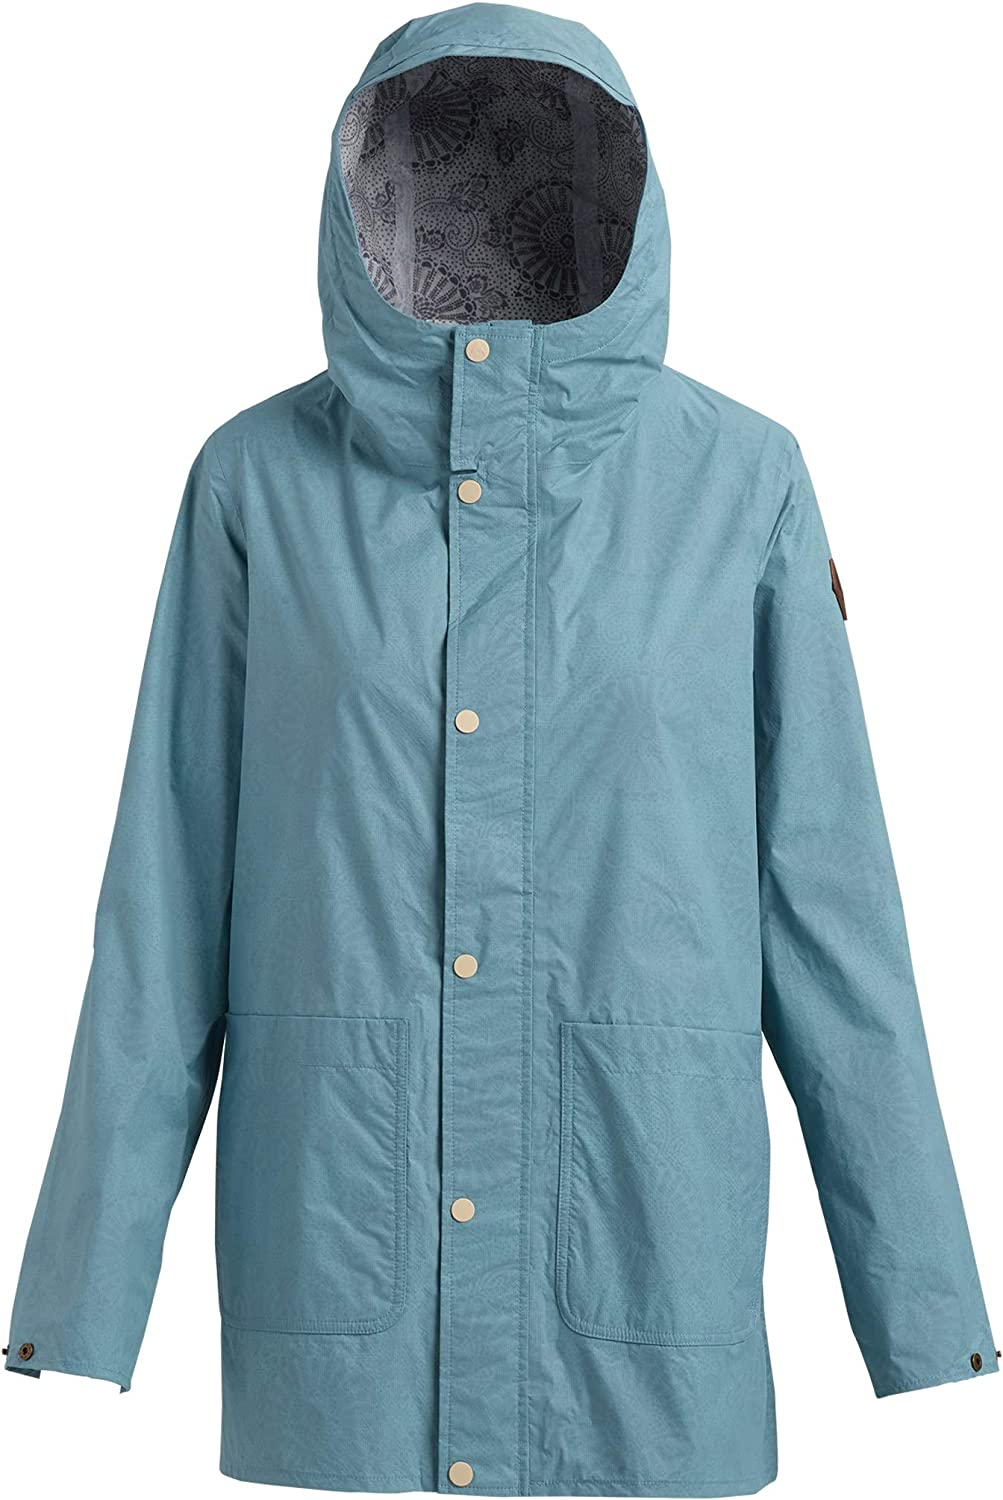 Burton Women's 2.5l Tulpa Jacket, Stone bluee, Small